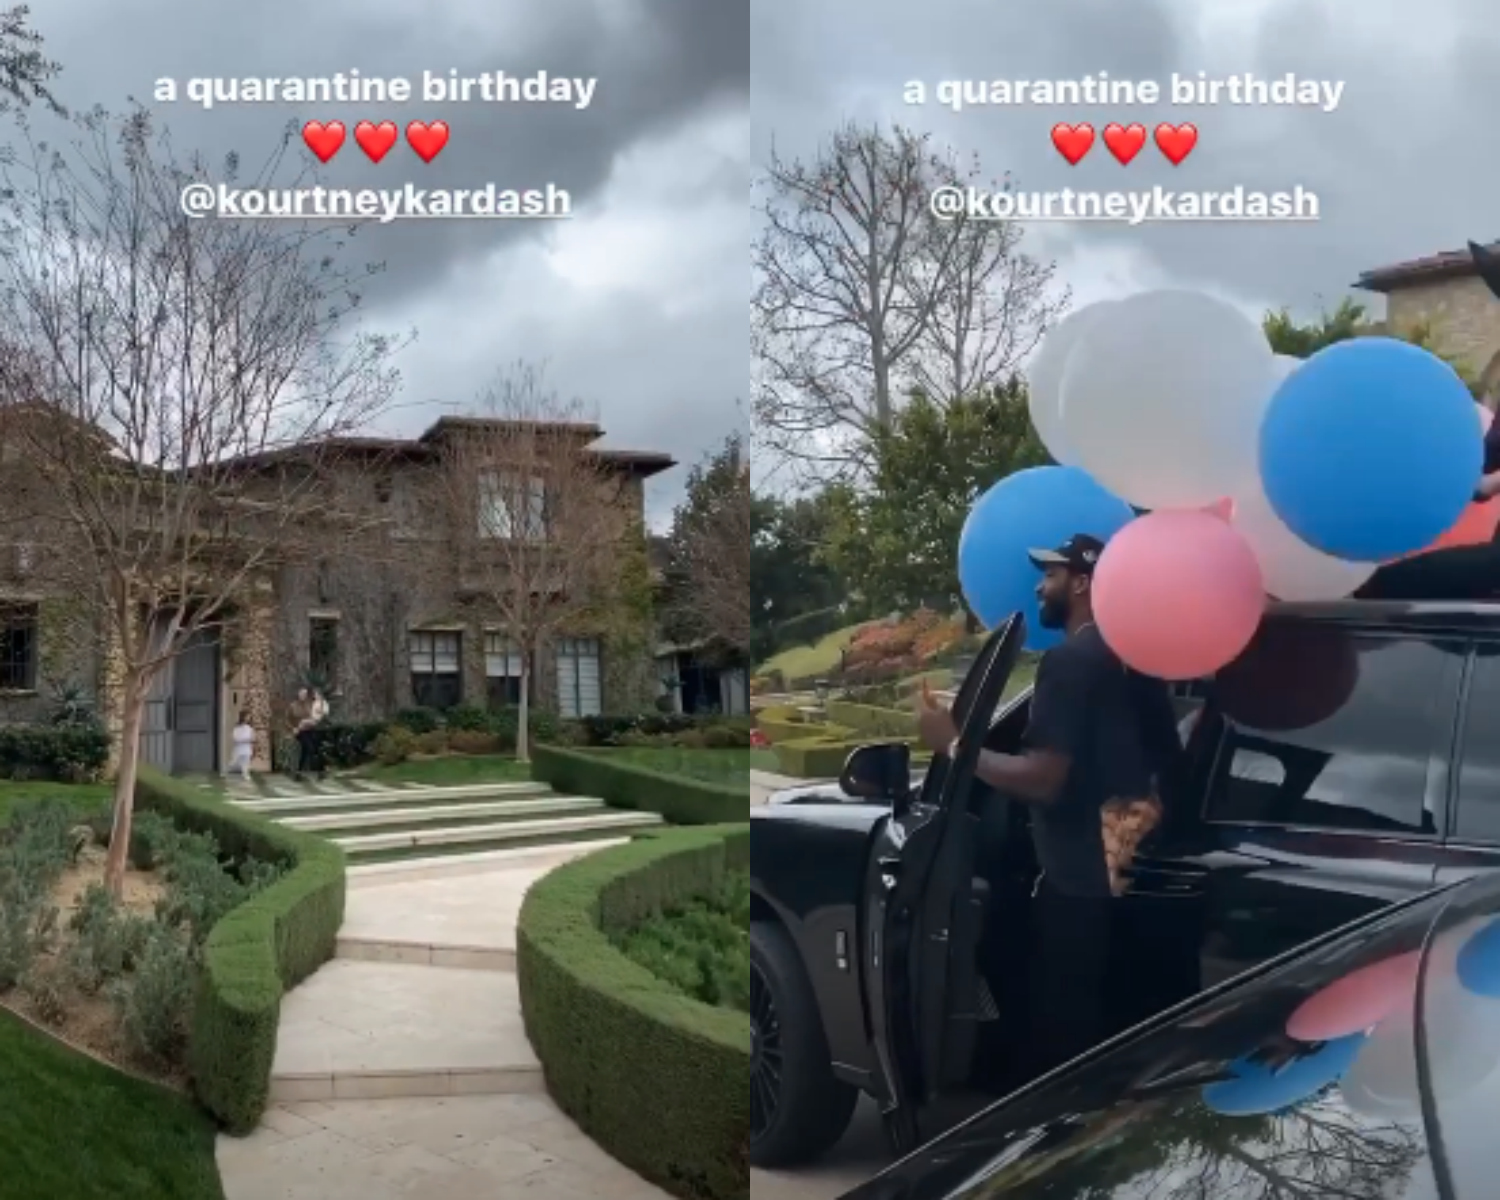 kourtney kardashian's friends wish her happy birthday outside